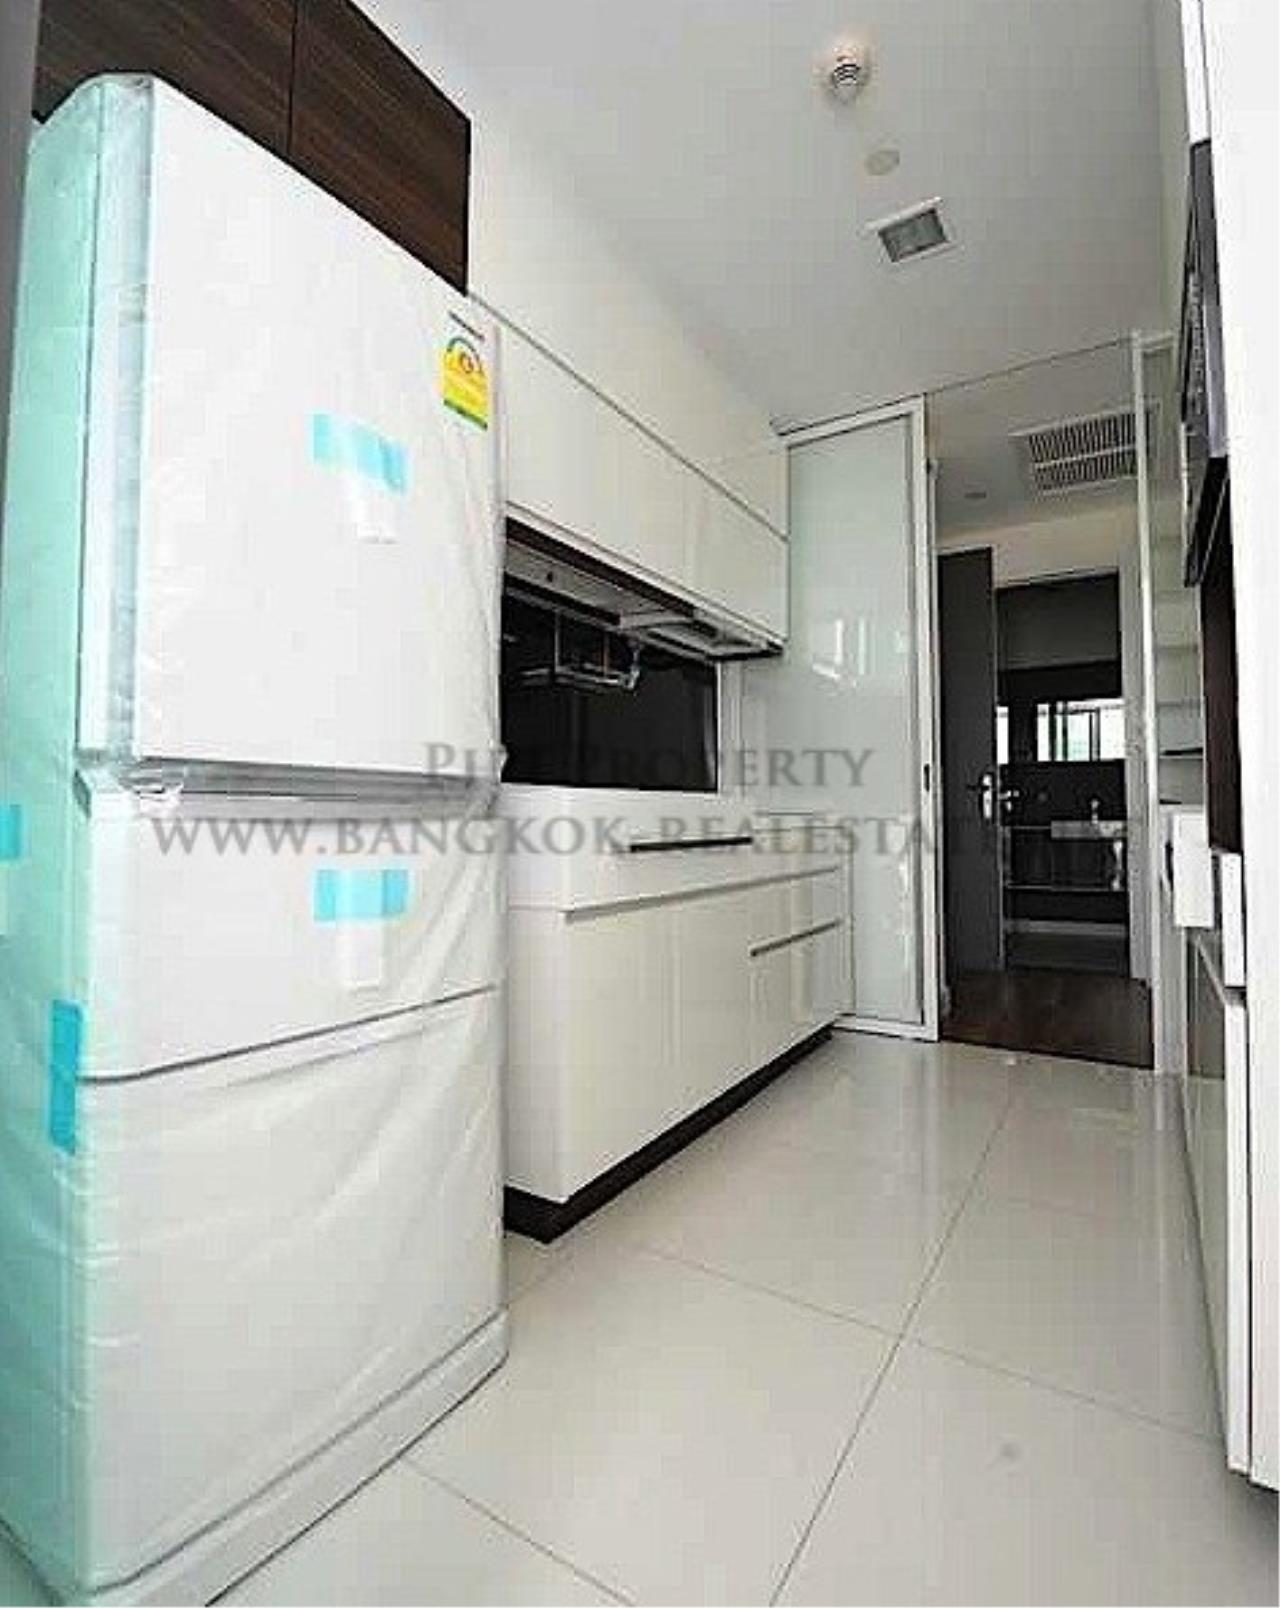 Piri Property Agency's 2 Bedroom in the Room 62 for Rent - Next to Punawithee BTS 3